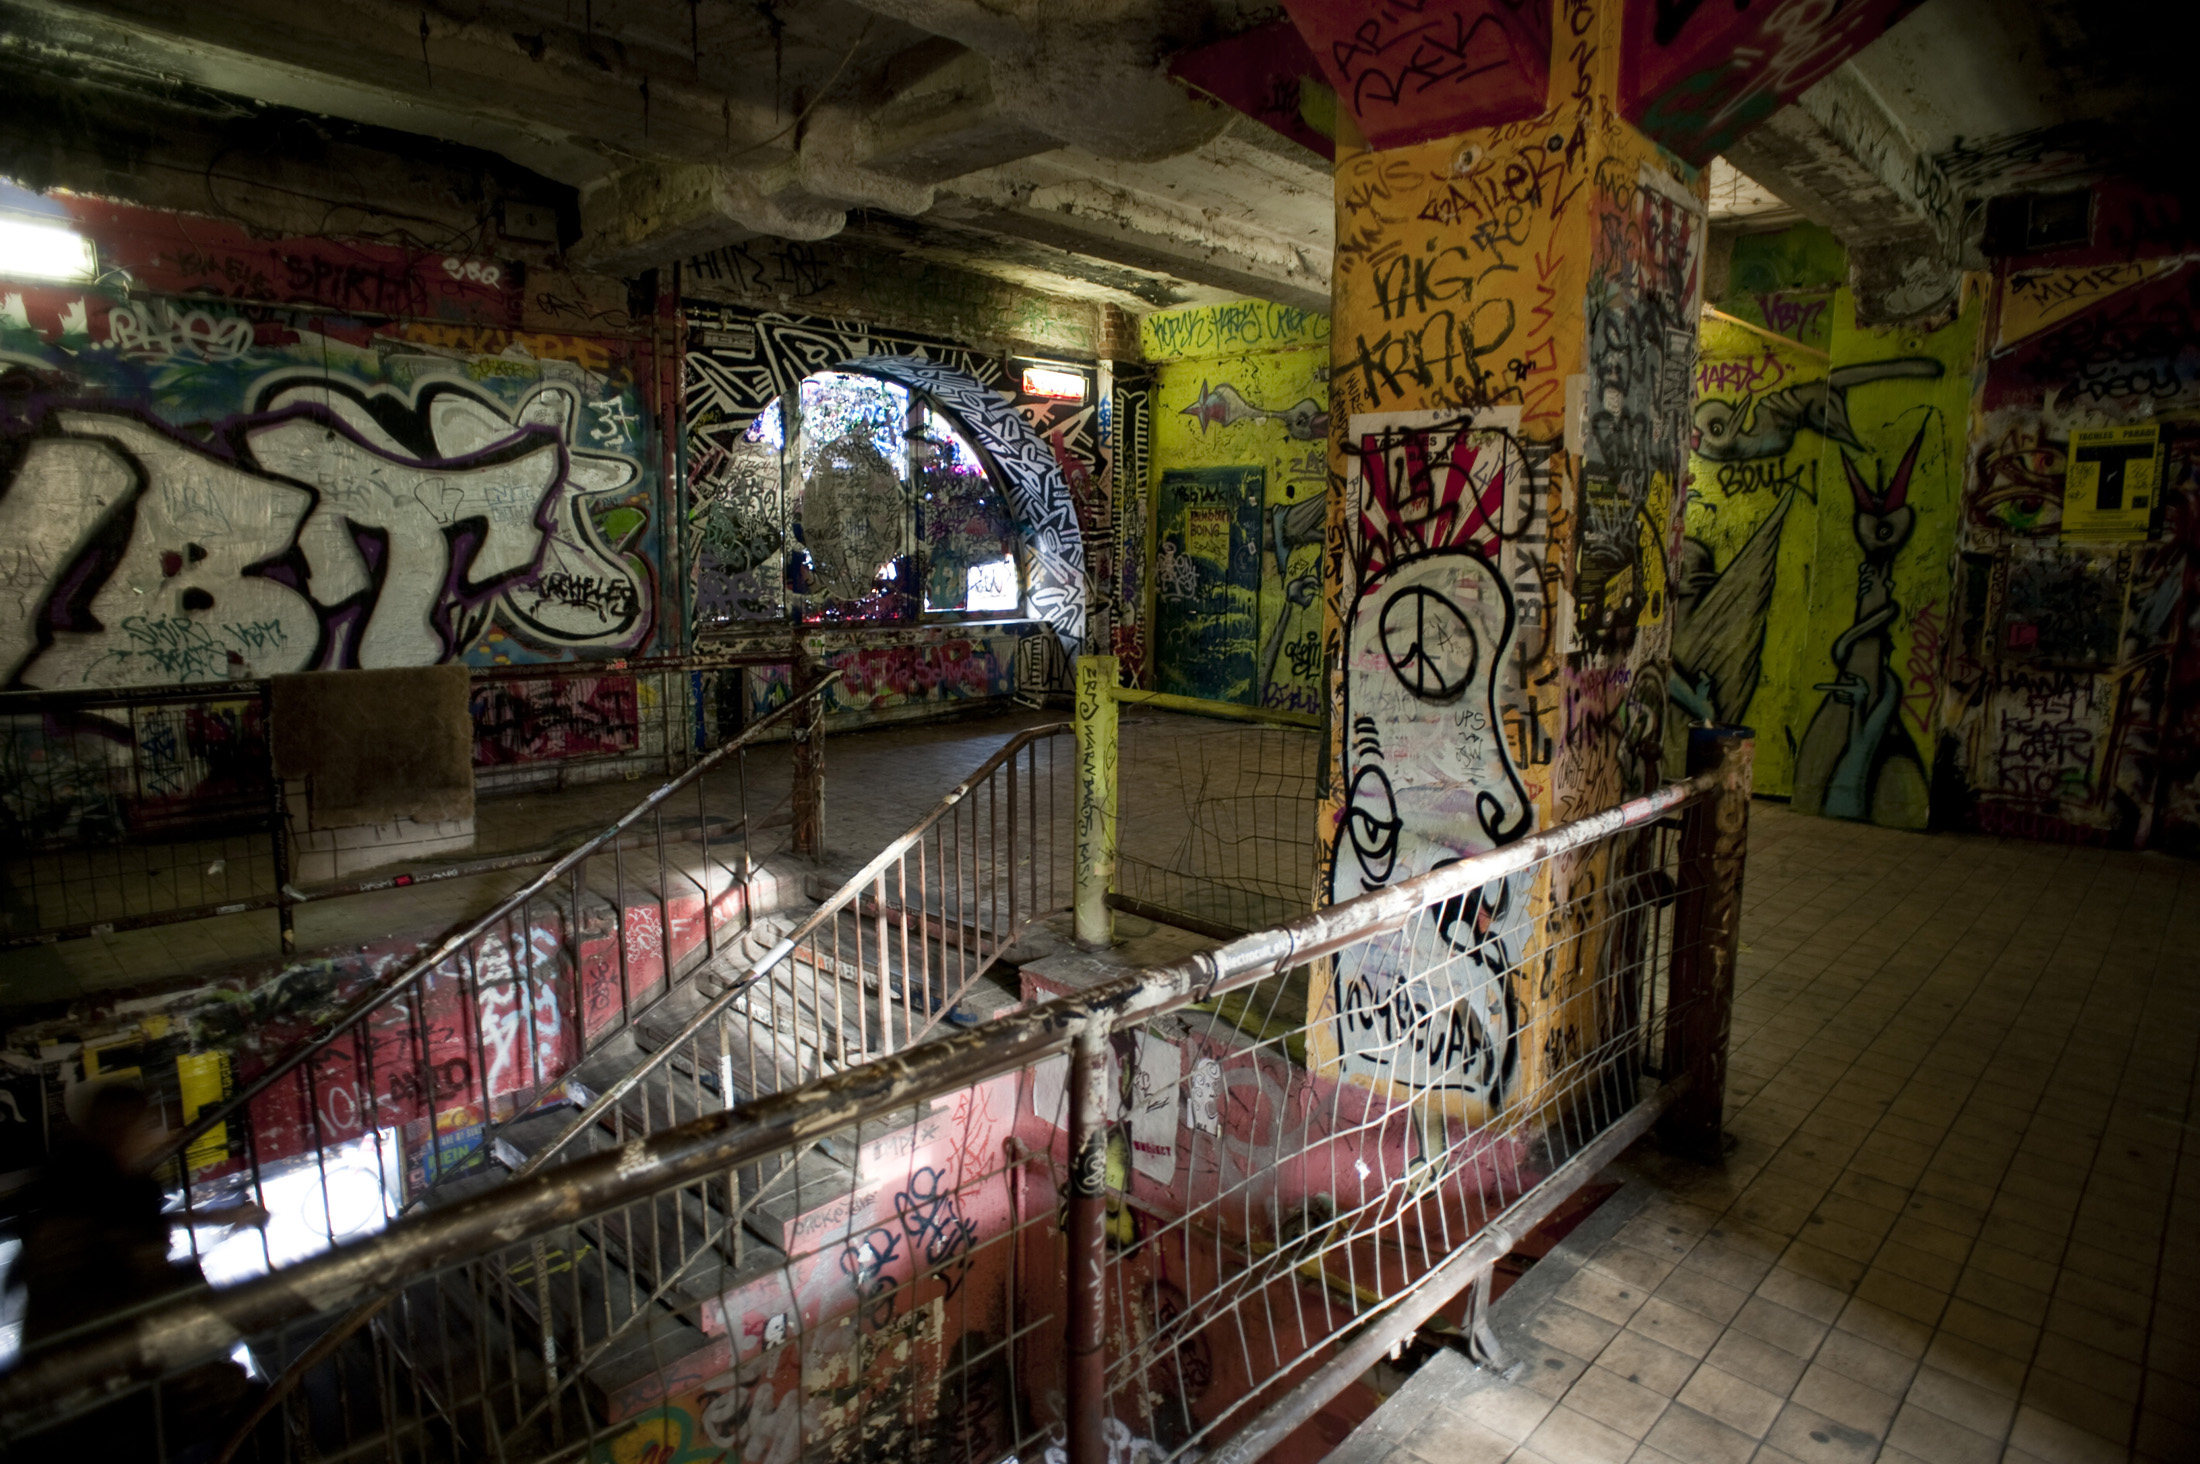 graffiti stairs at Kunsthaus Tacheles, Berlin, Germany